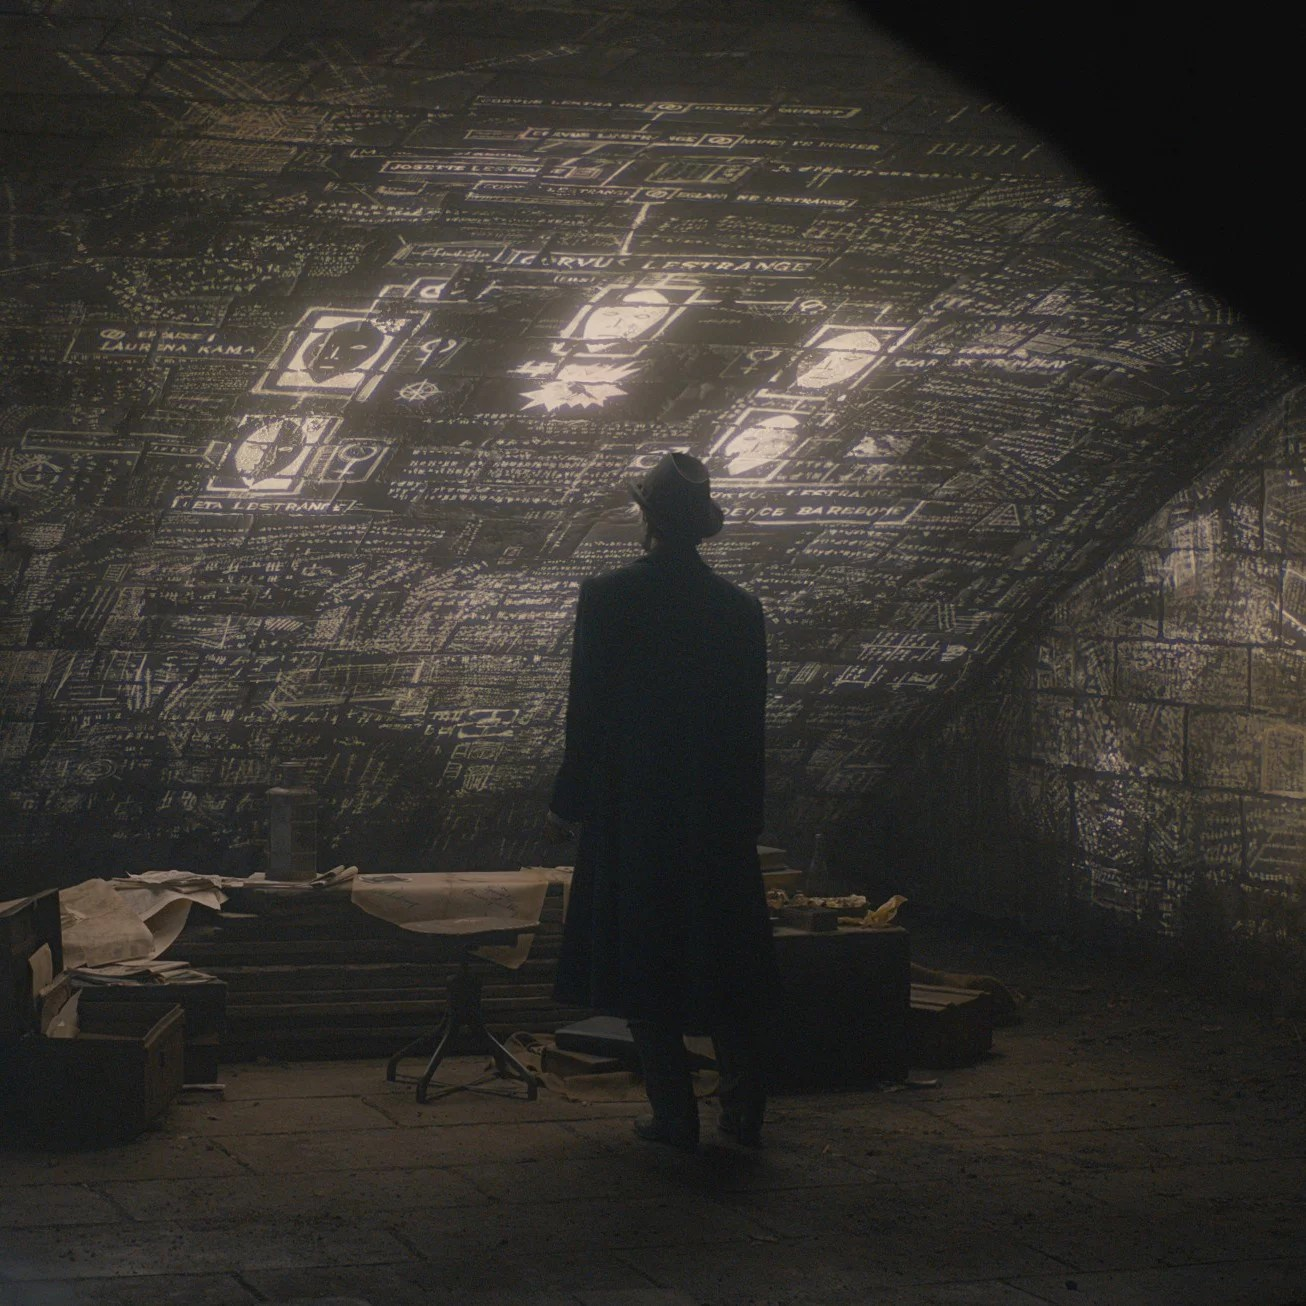 Wall Art Credence Is Credence Related To Leta Lestrange In Fantastic Beasts